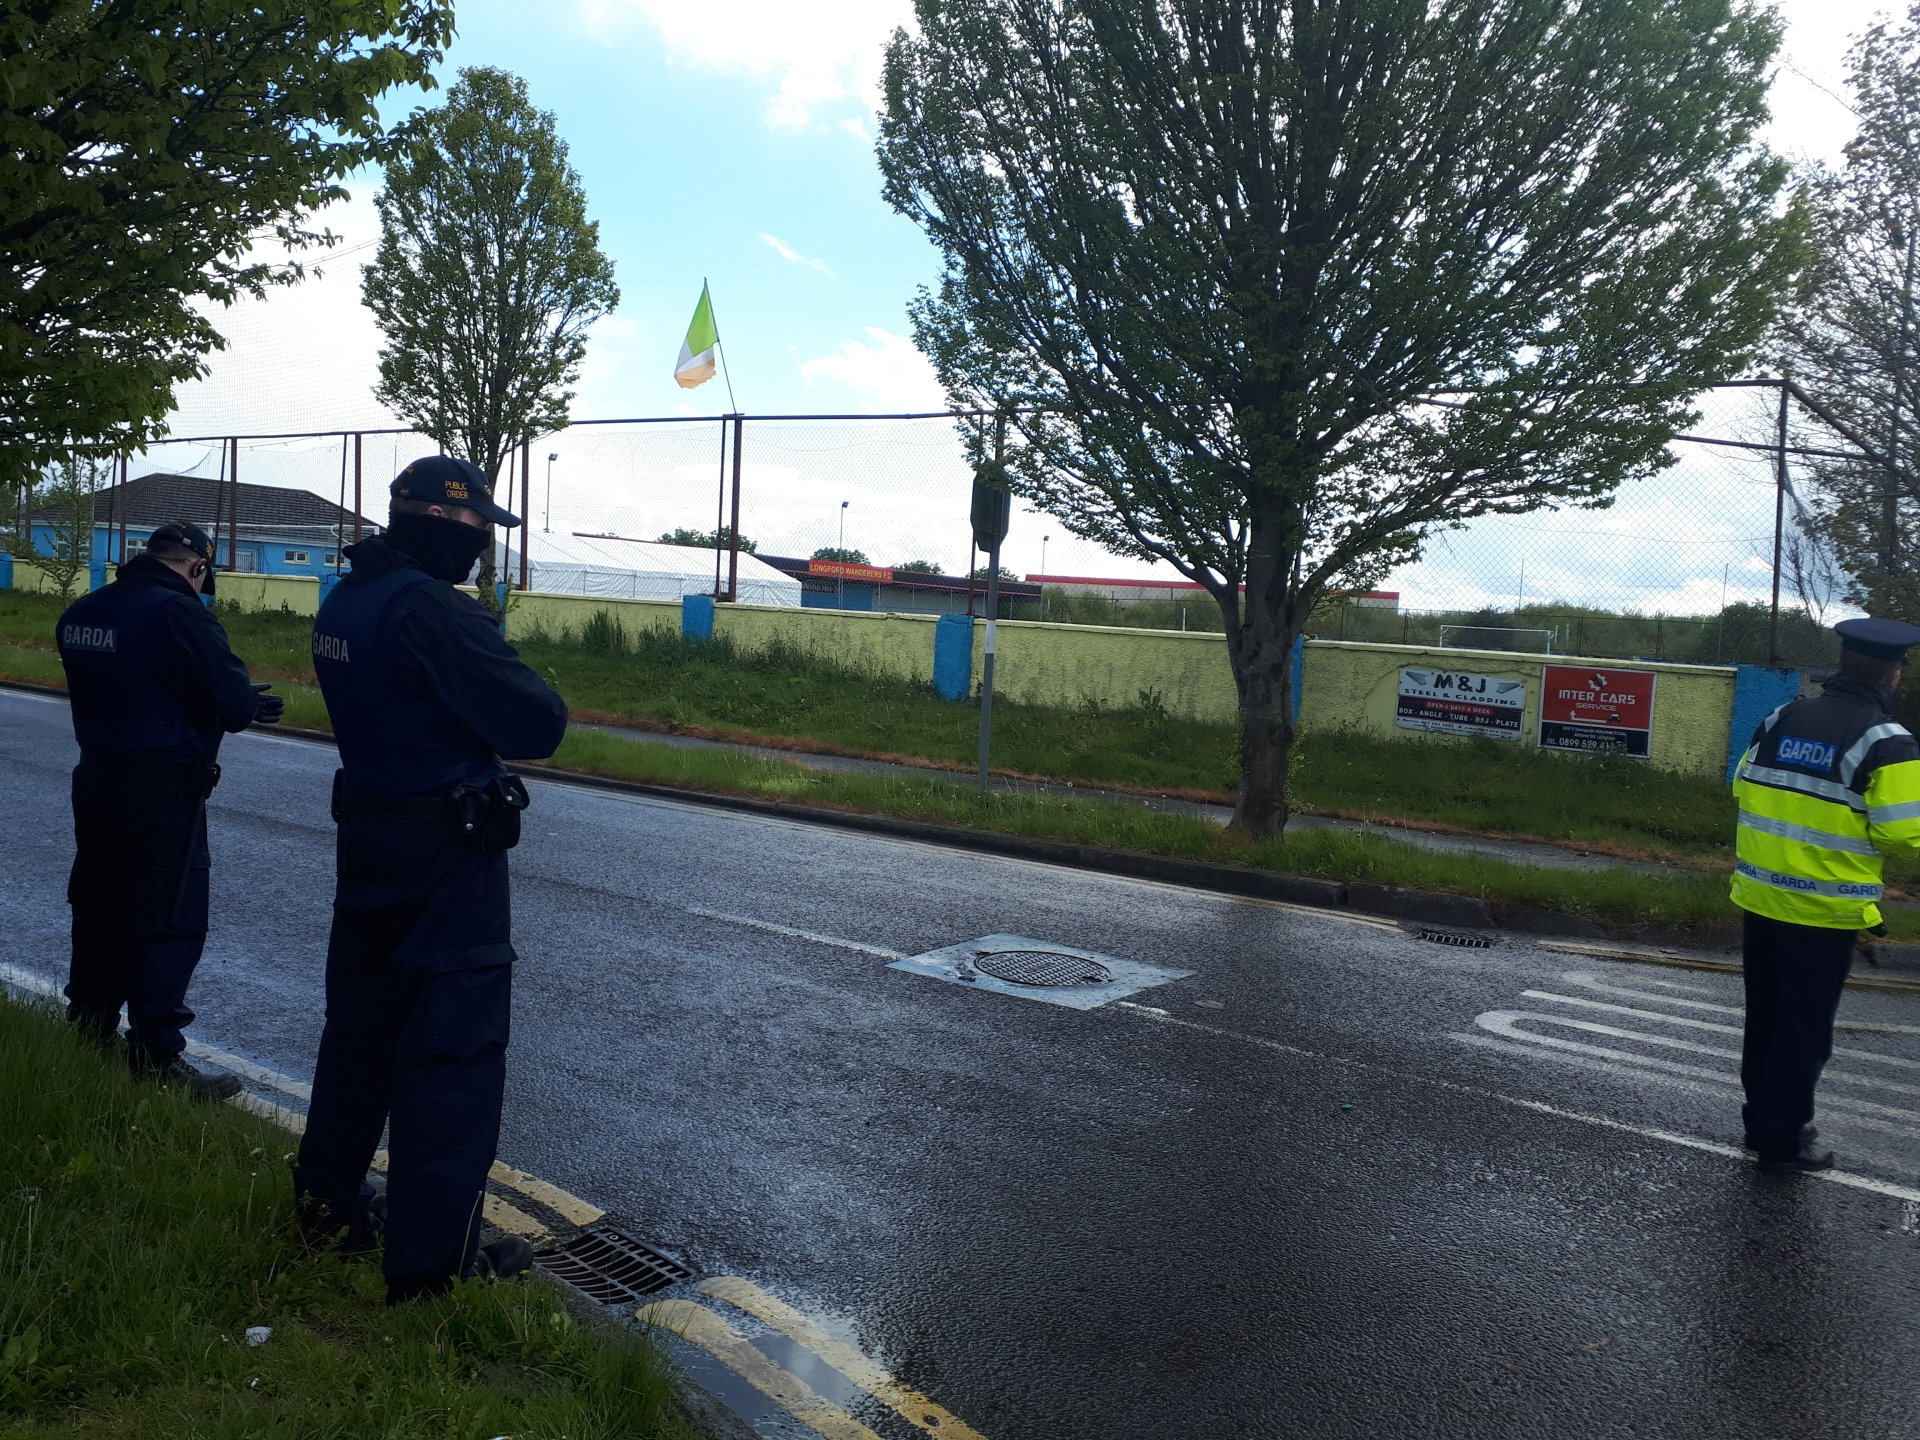 Armed gardaí at the scene of last week's traveller wedding after party